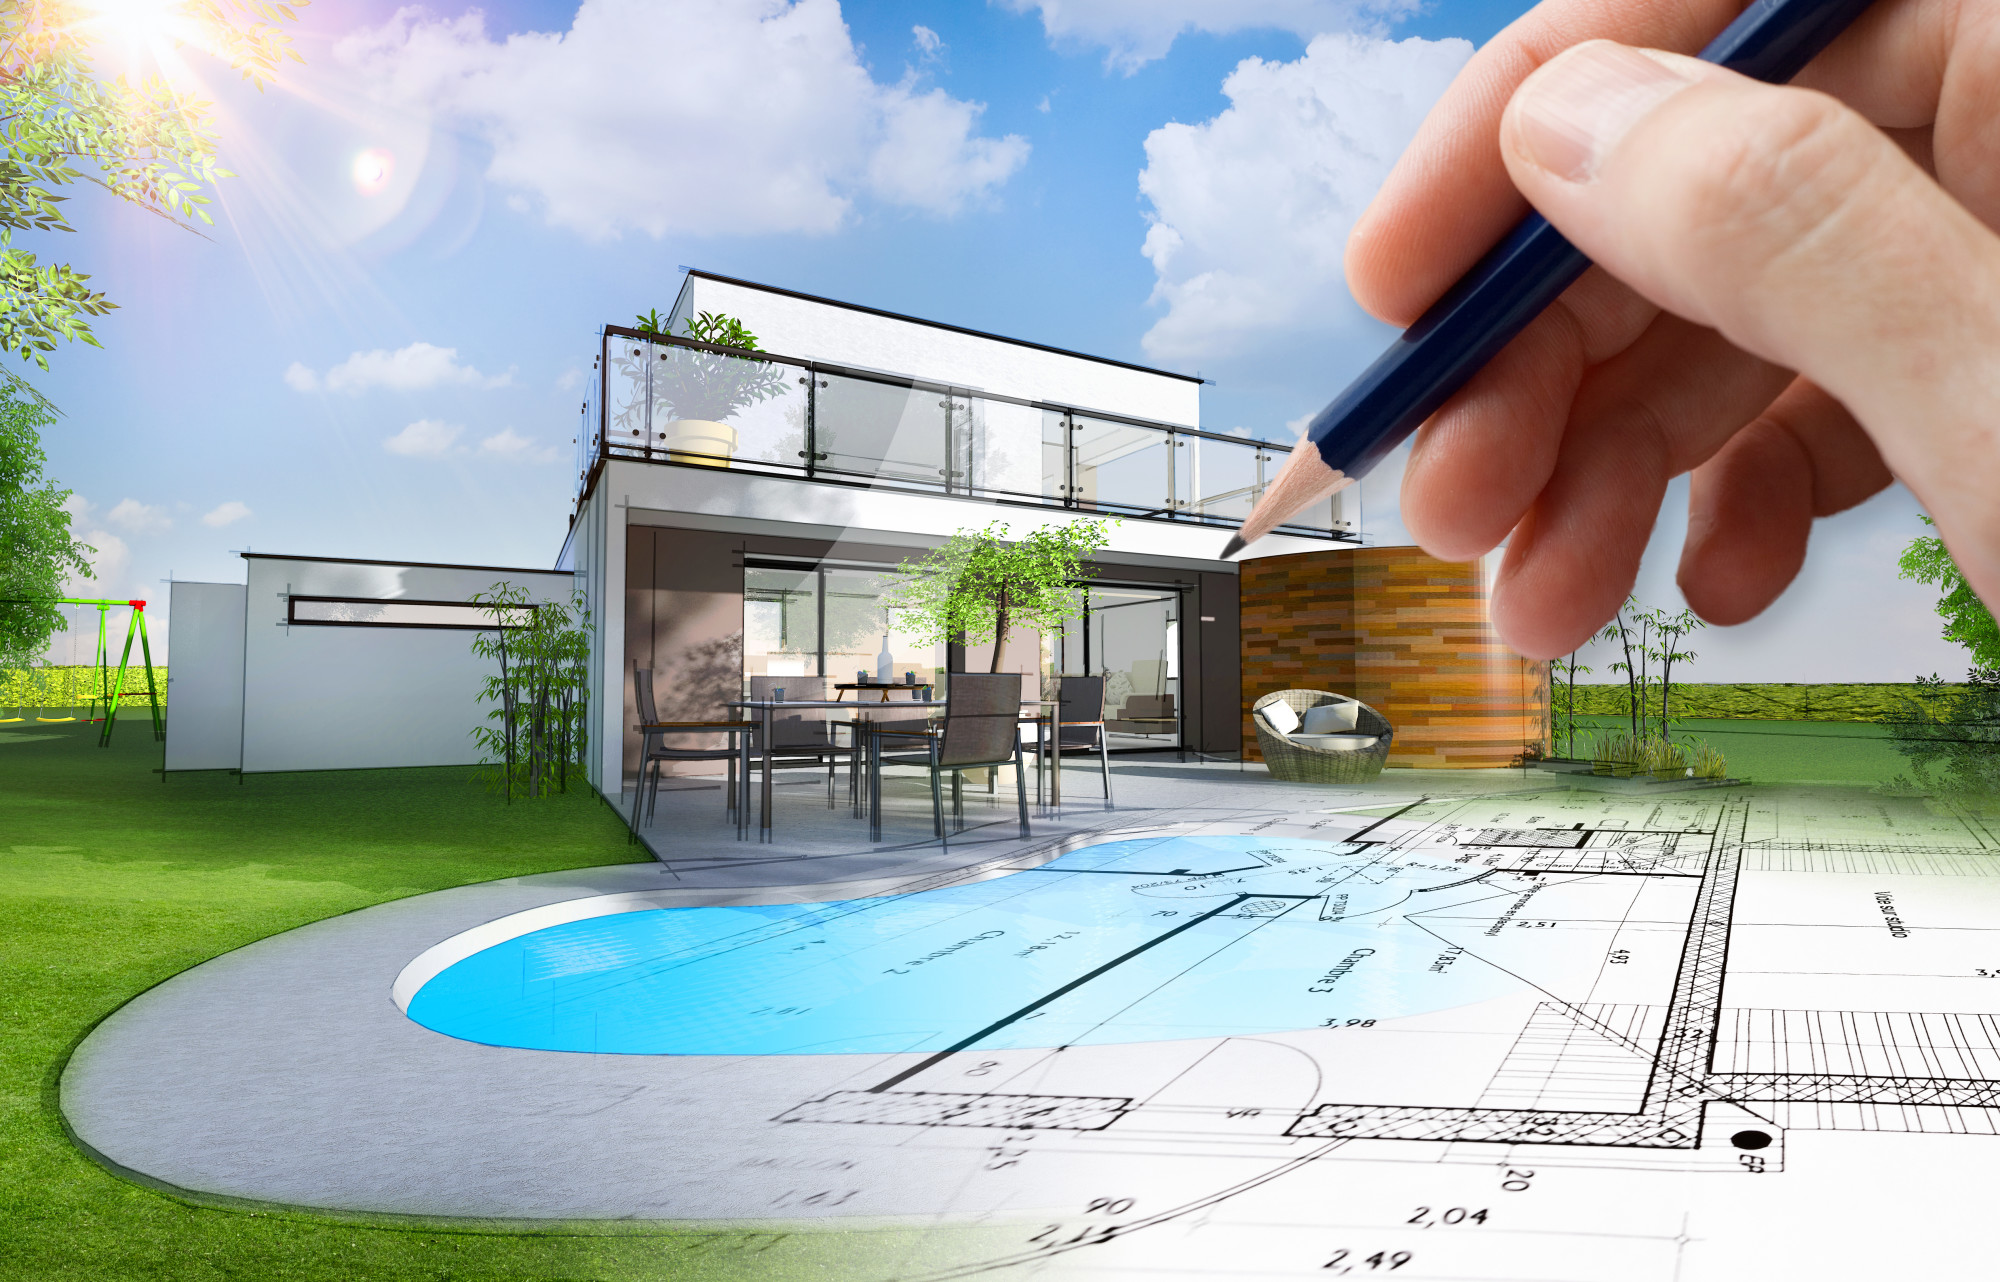 Swimming Pool Builders: 7 Tips for Finding the Right Builder for Your Pool